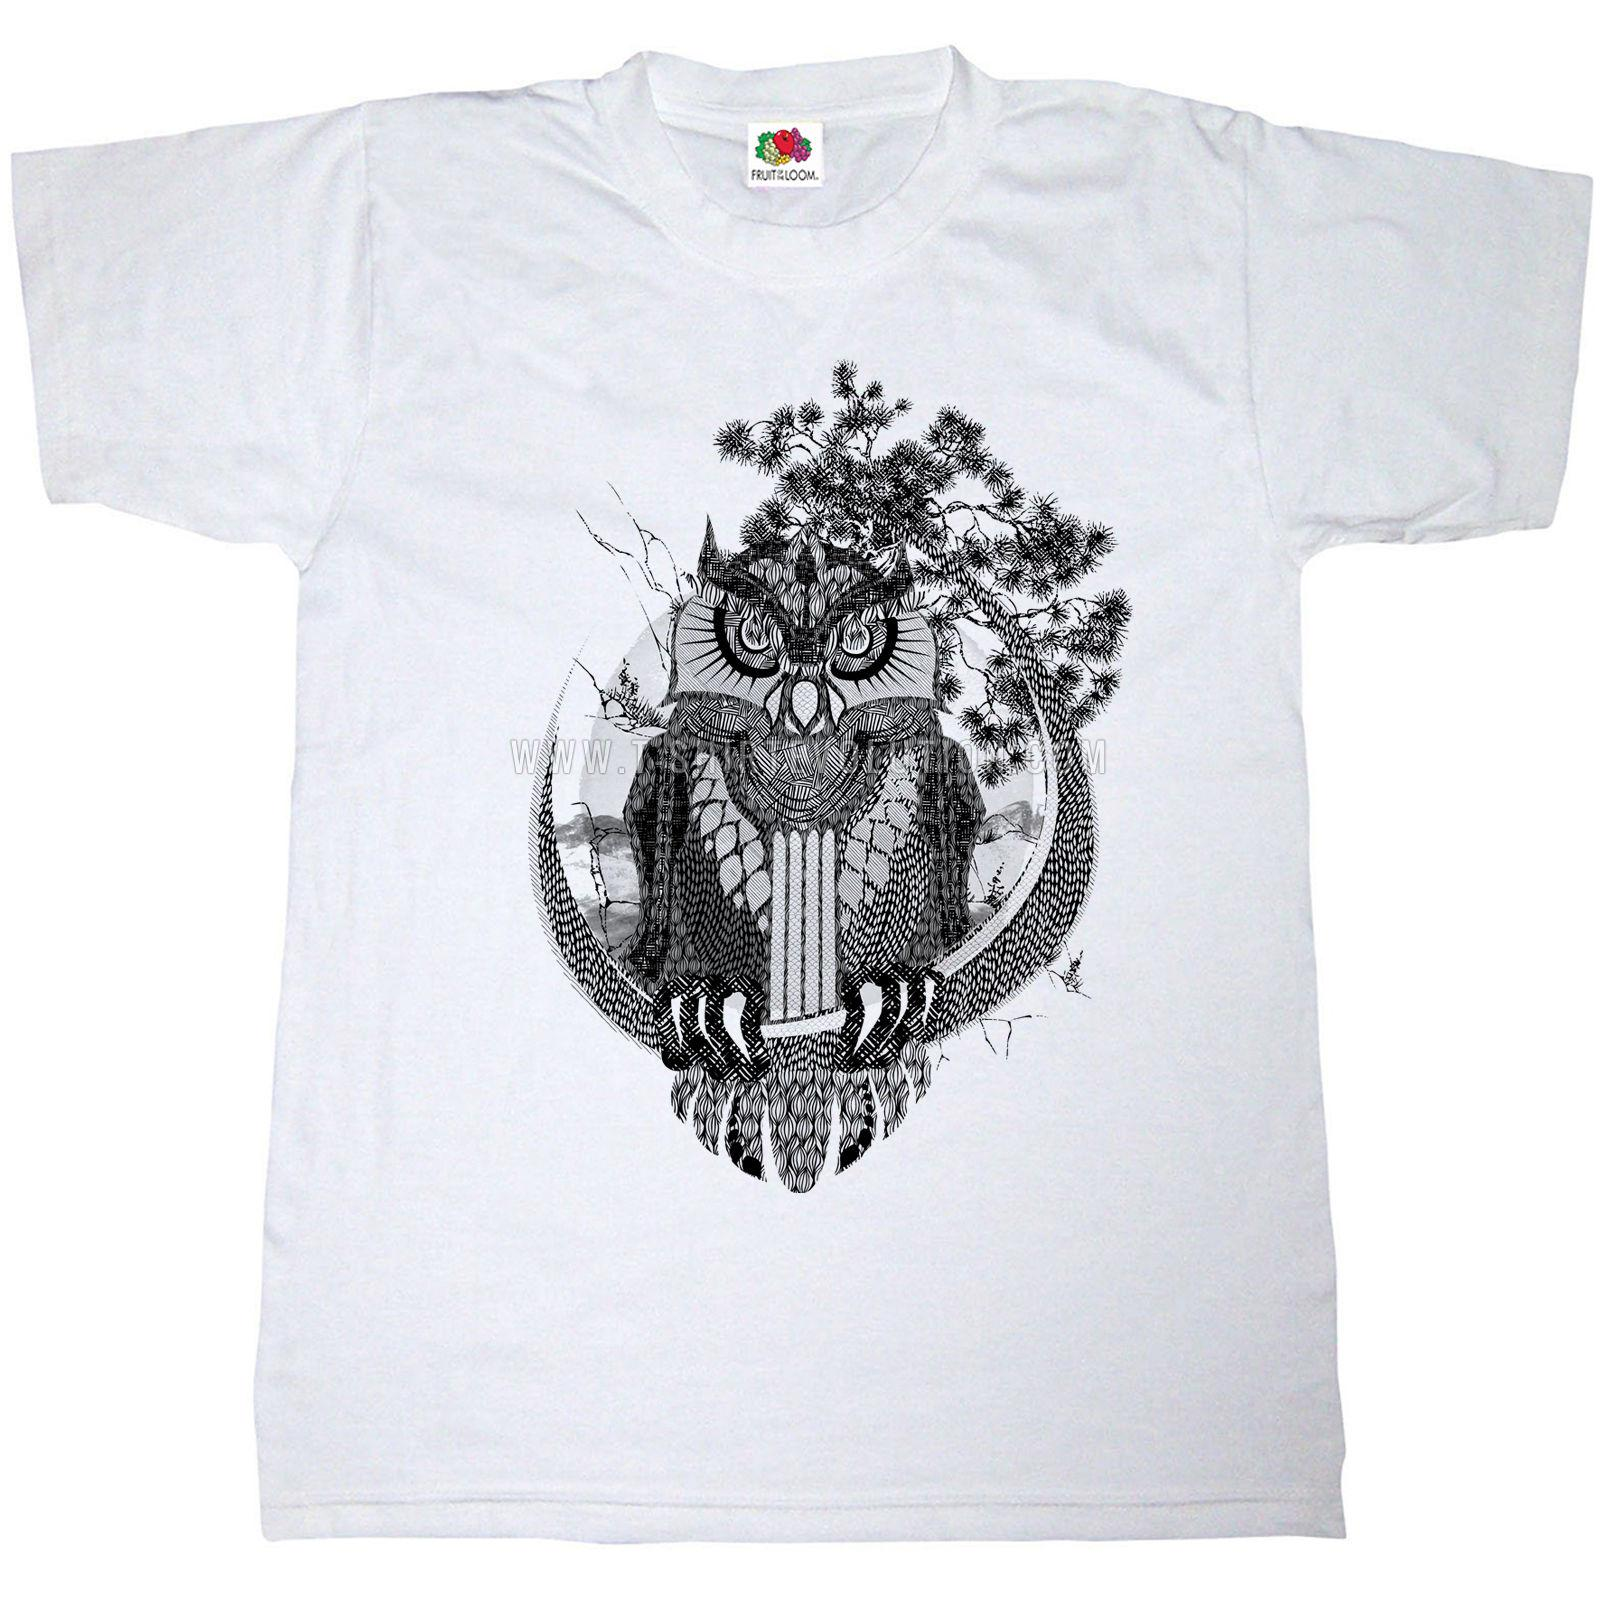 fef4f8a58 OWL T SHIRT 100% COTTON WISE OLD BIRD ANIMAL NATURE HAND DRAWN CUTE Quality T  Shirts Men Printing Short Sleeve O Neck Tshirt Fun T Shirts Online Shirts  From ...